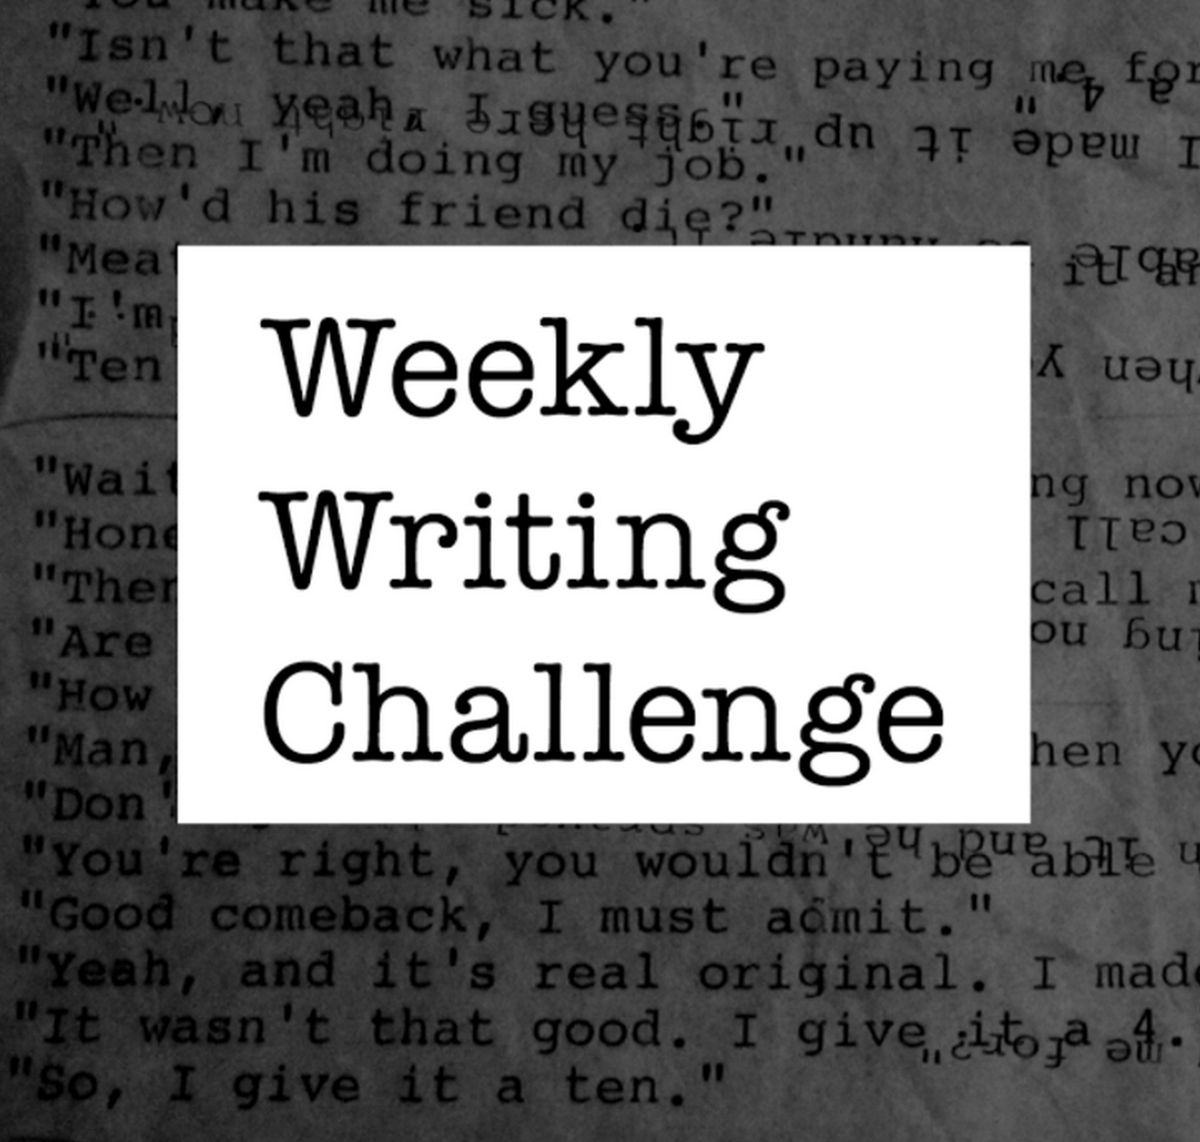 RT @hitRECord  A new writing challenge has been issued -- post your stories here: https://t.co/qv8TZ485K8 https://t.co/lgbNevlZlj